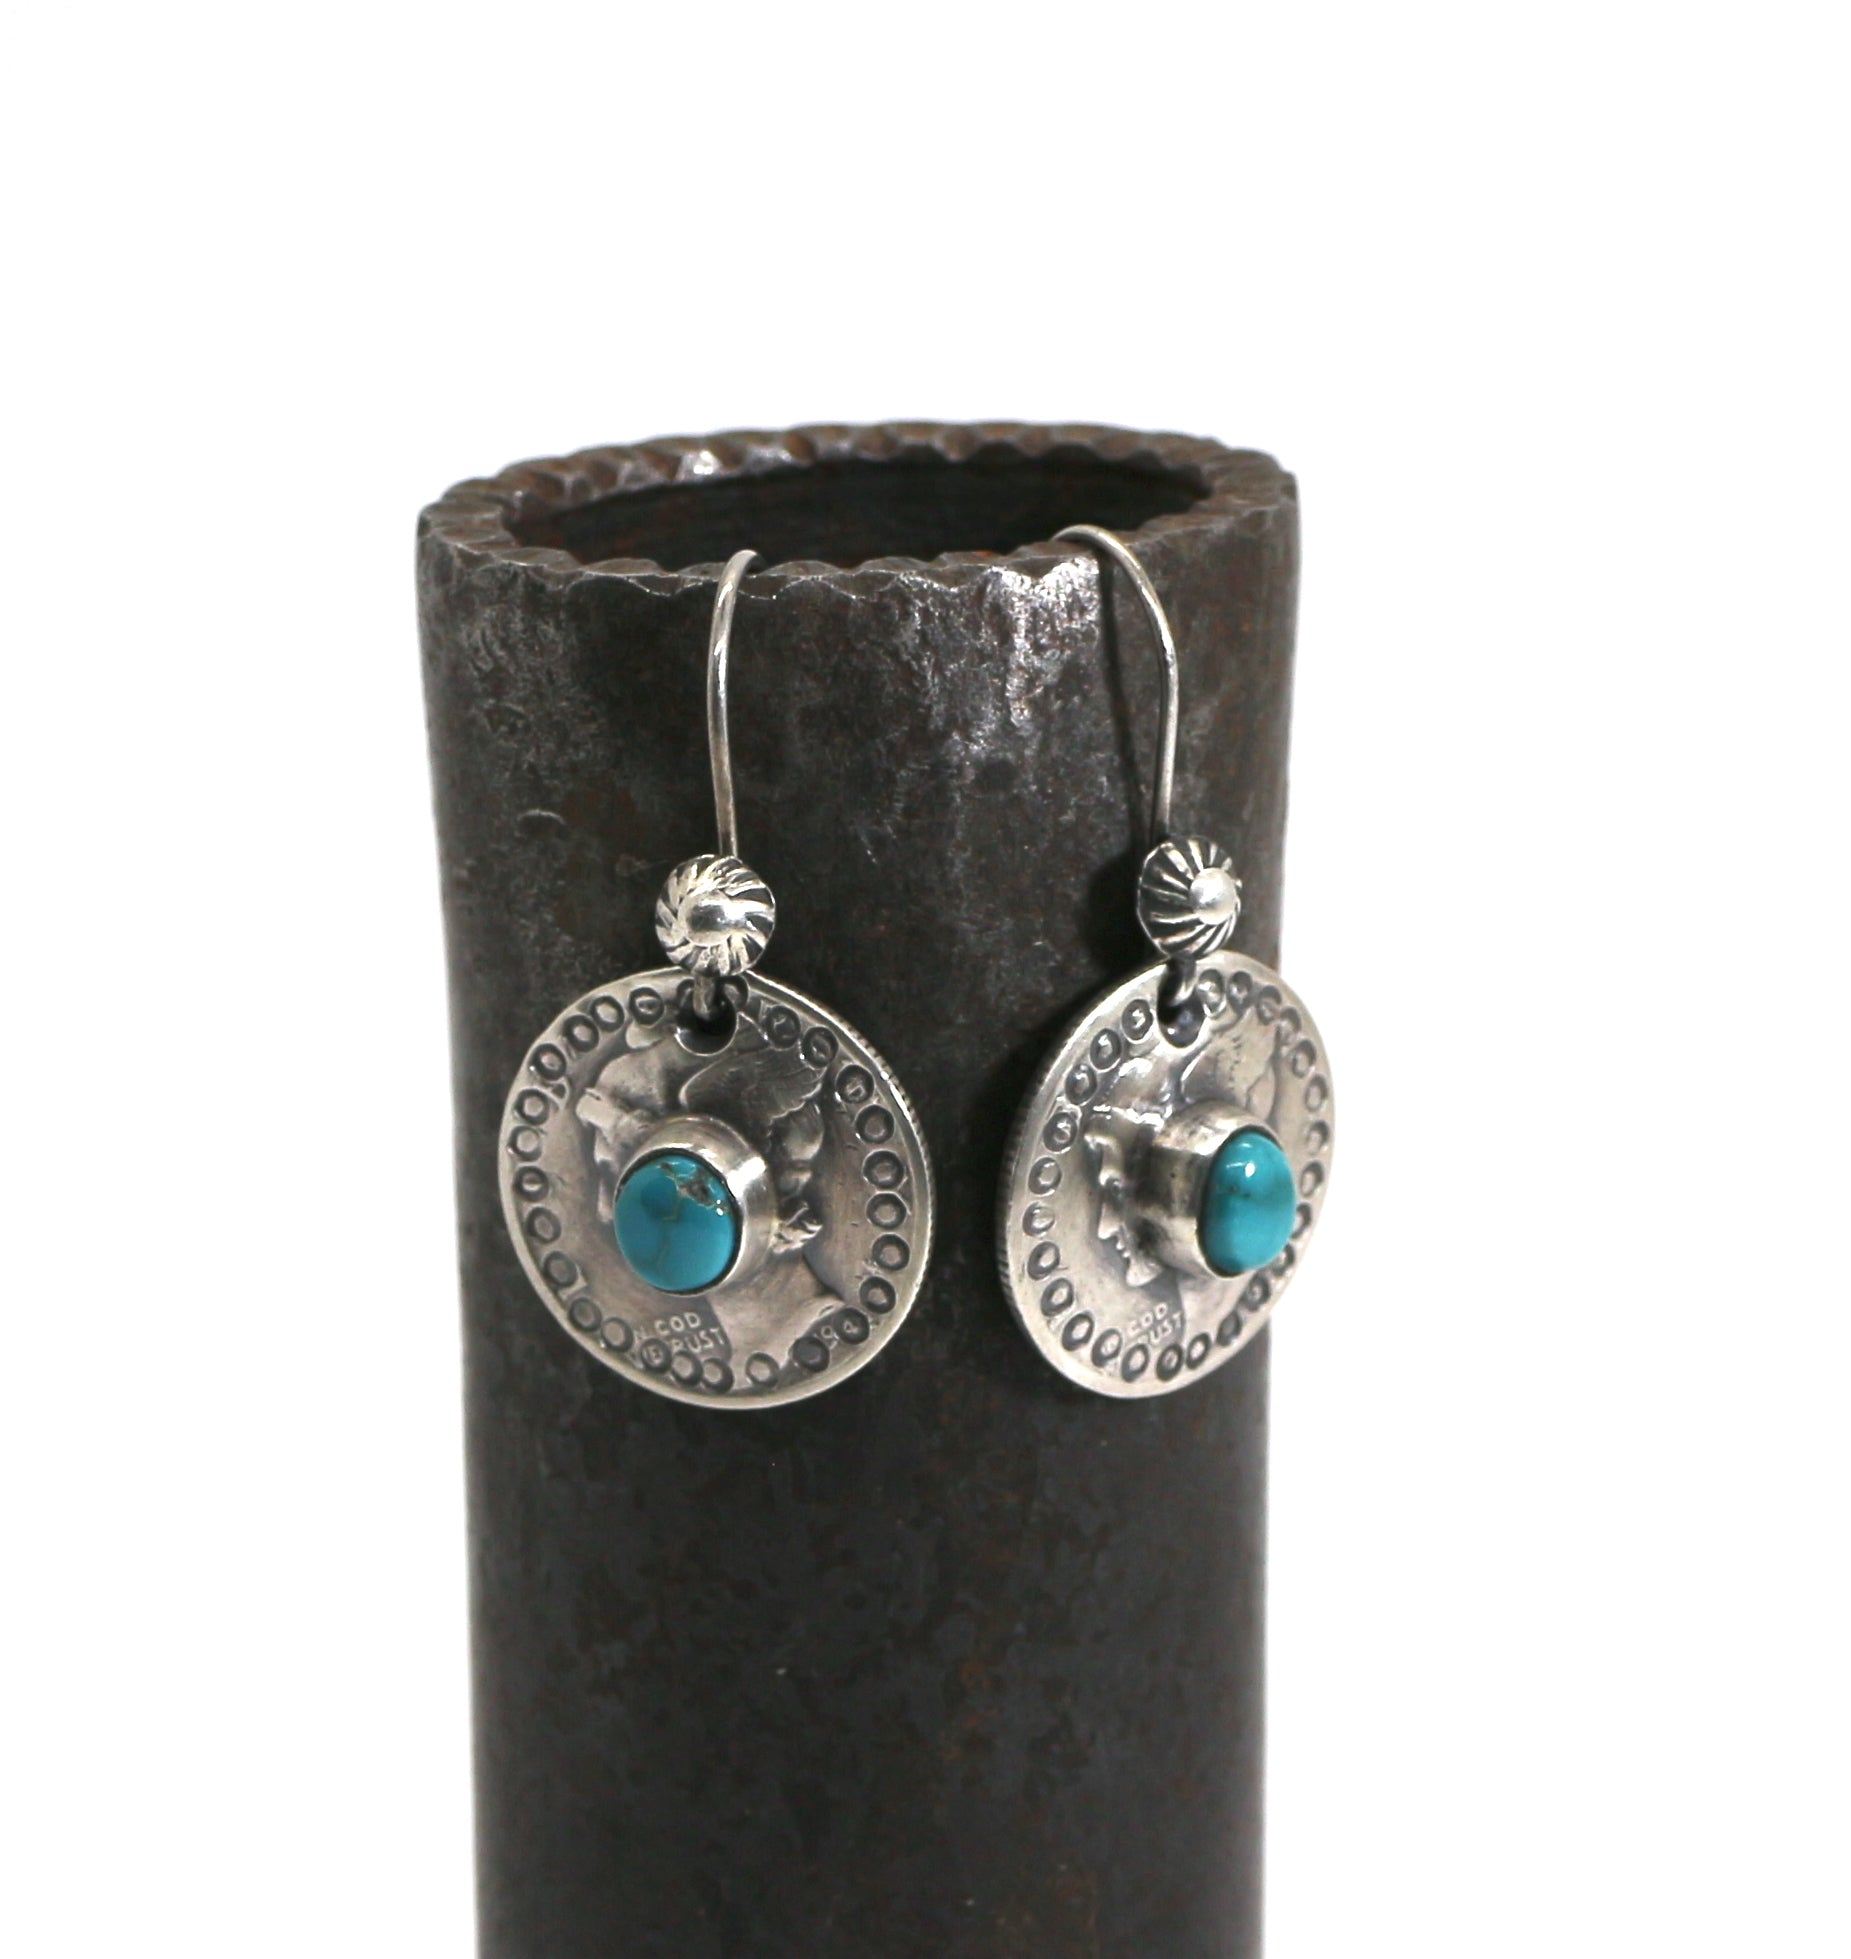 Jesse Robbins Mercury Dime earrings with Cheyenne.